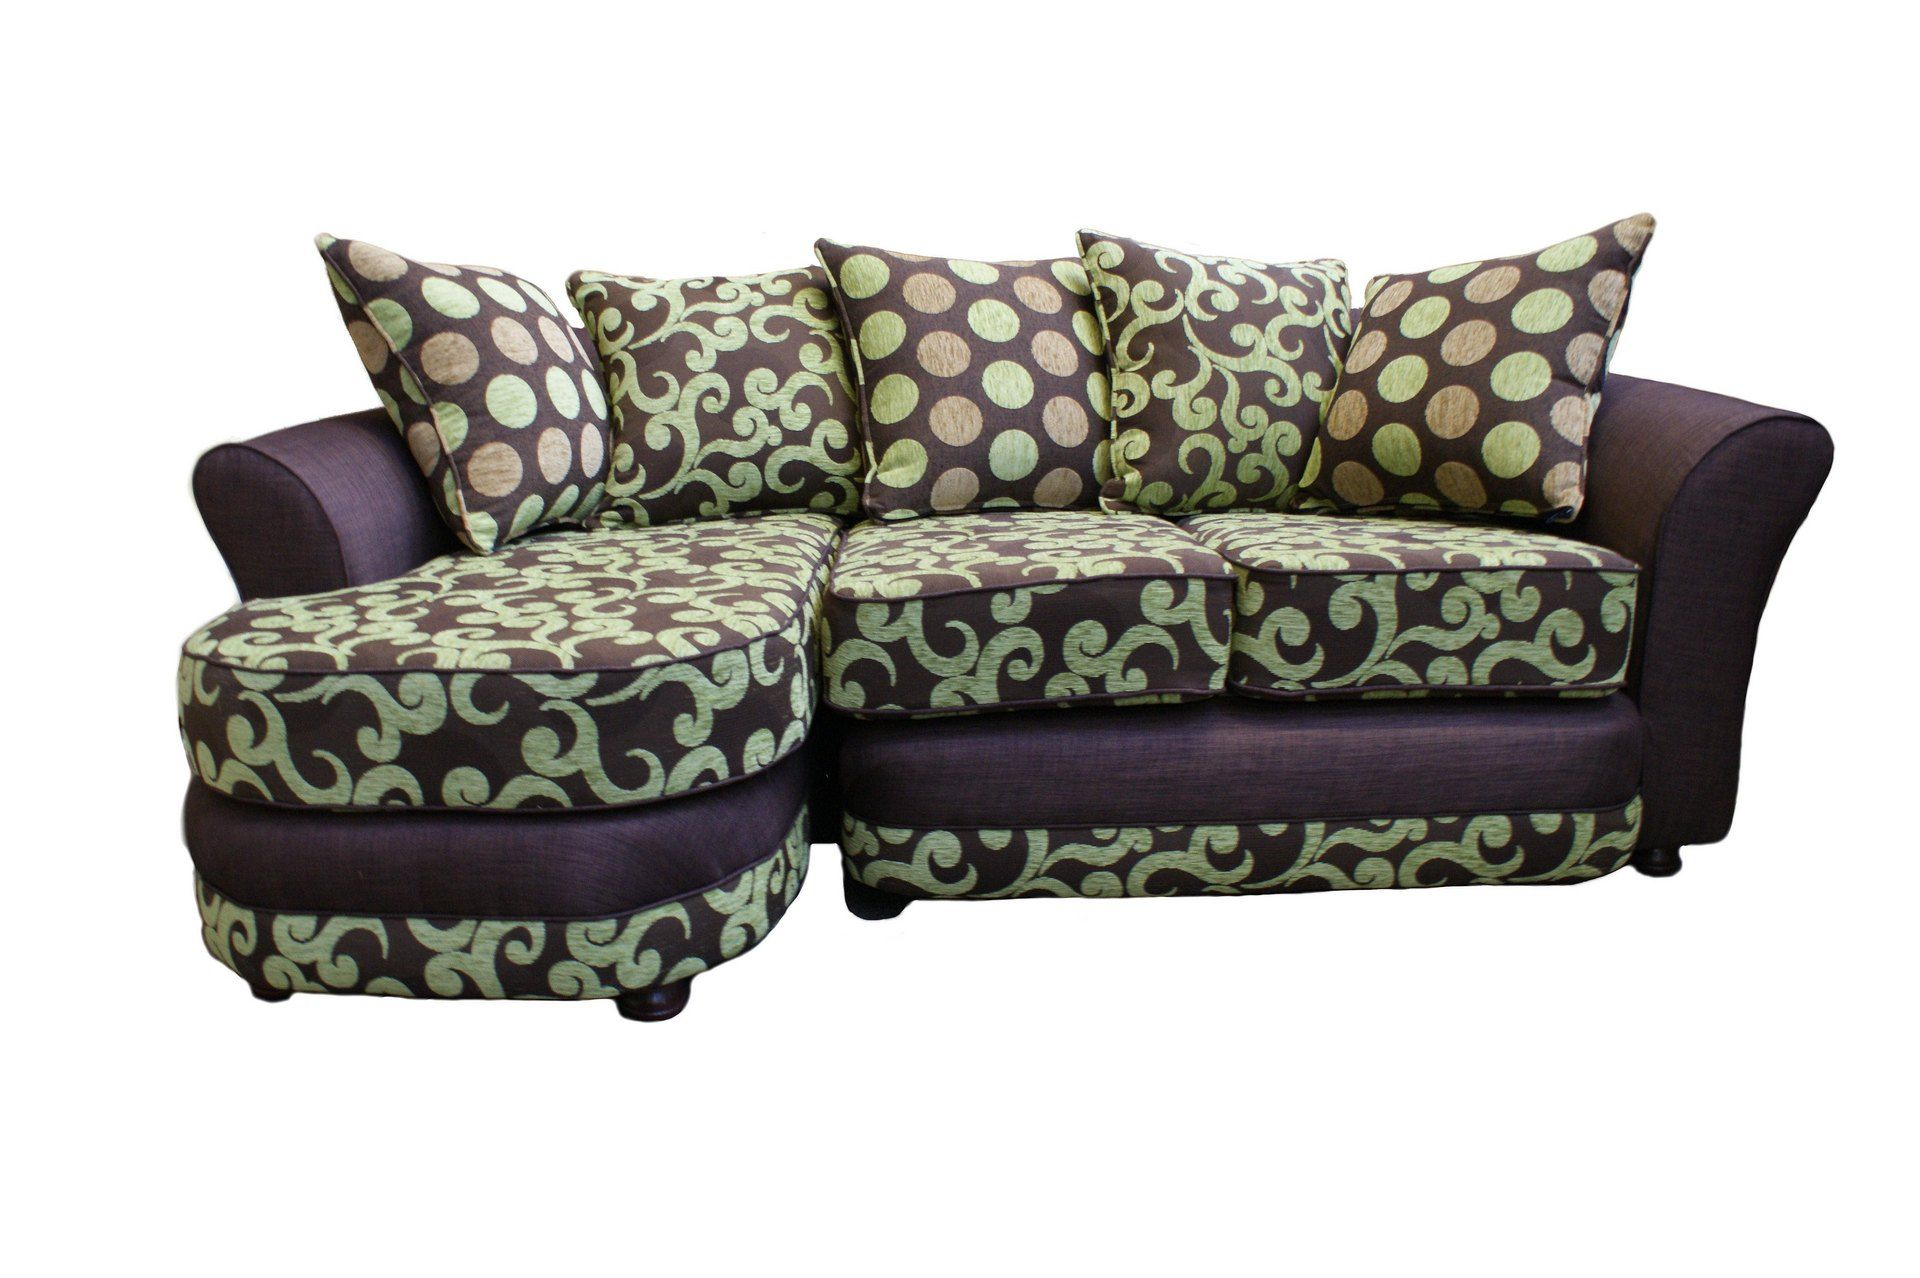 Best 25 Cheap sofas for sale ideas on Pinterest